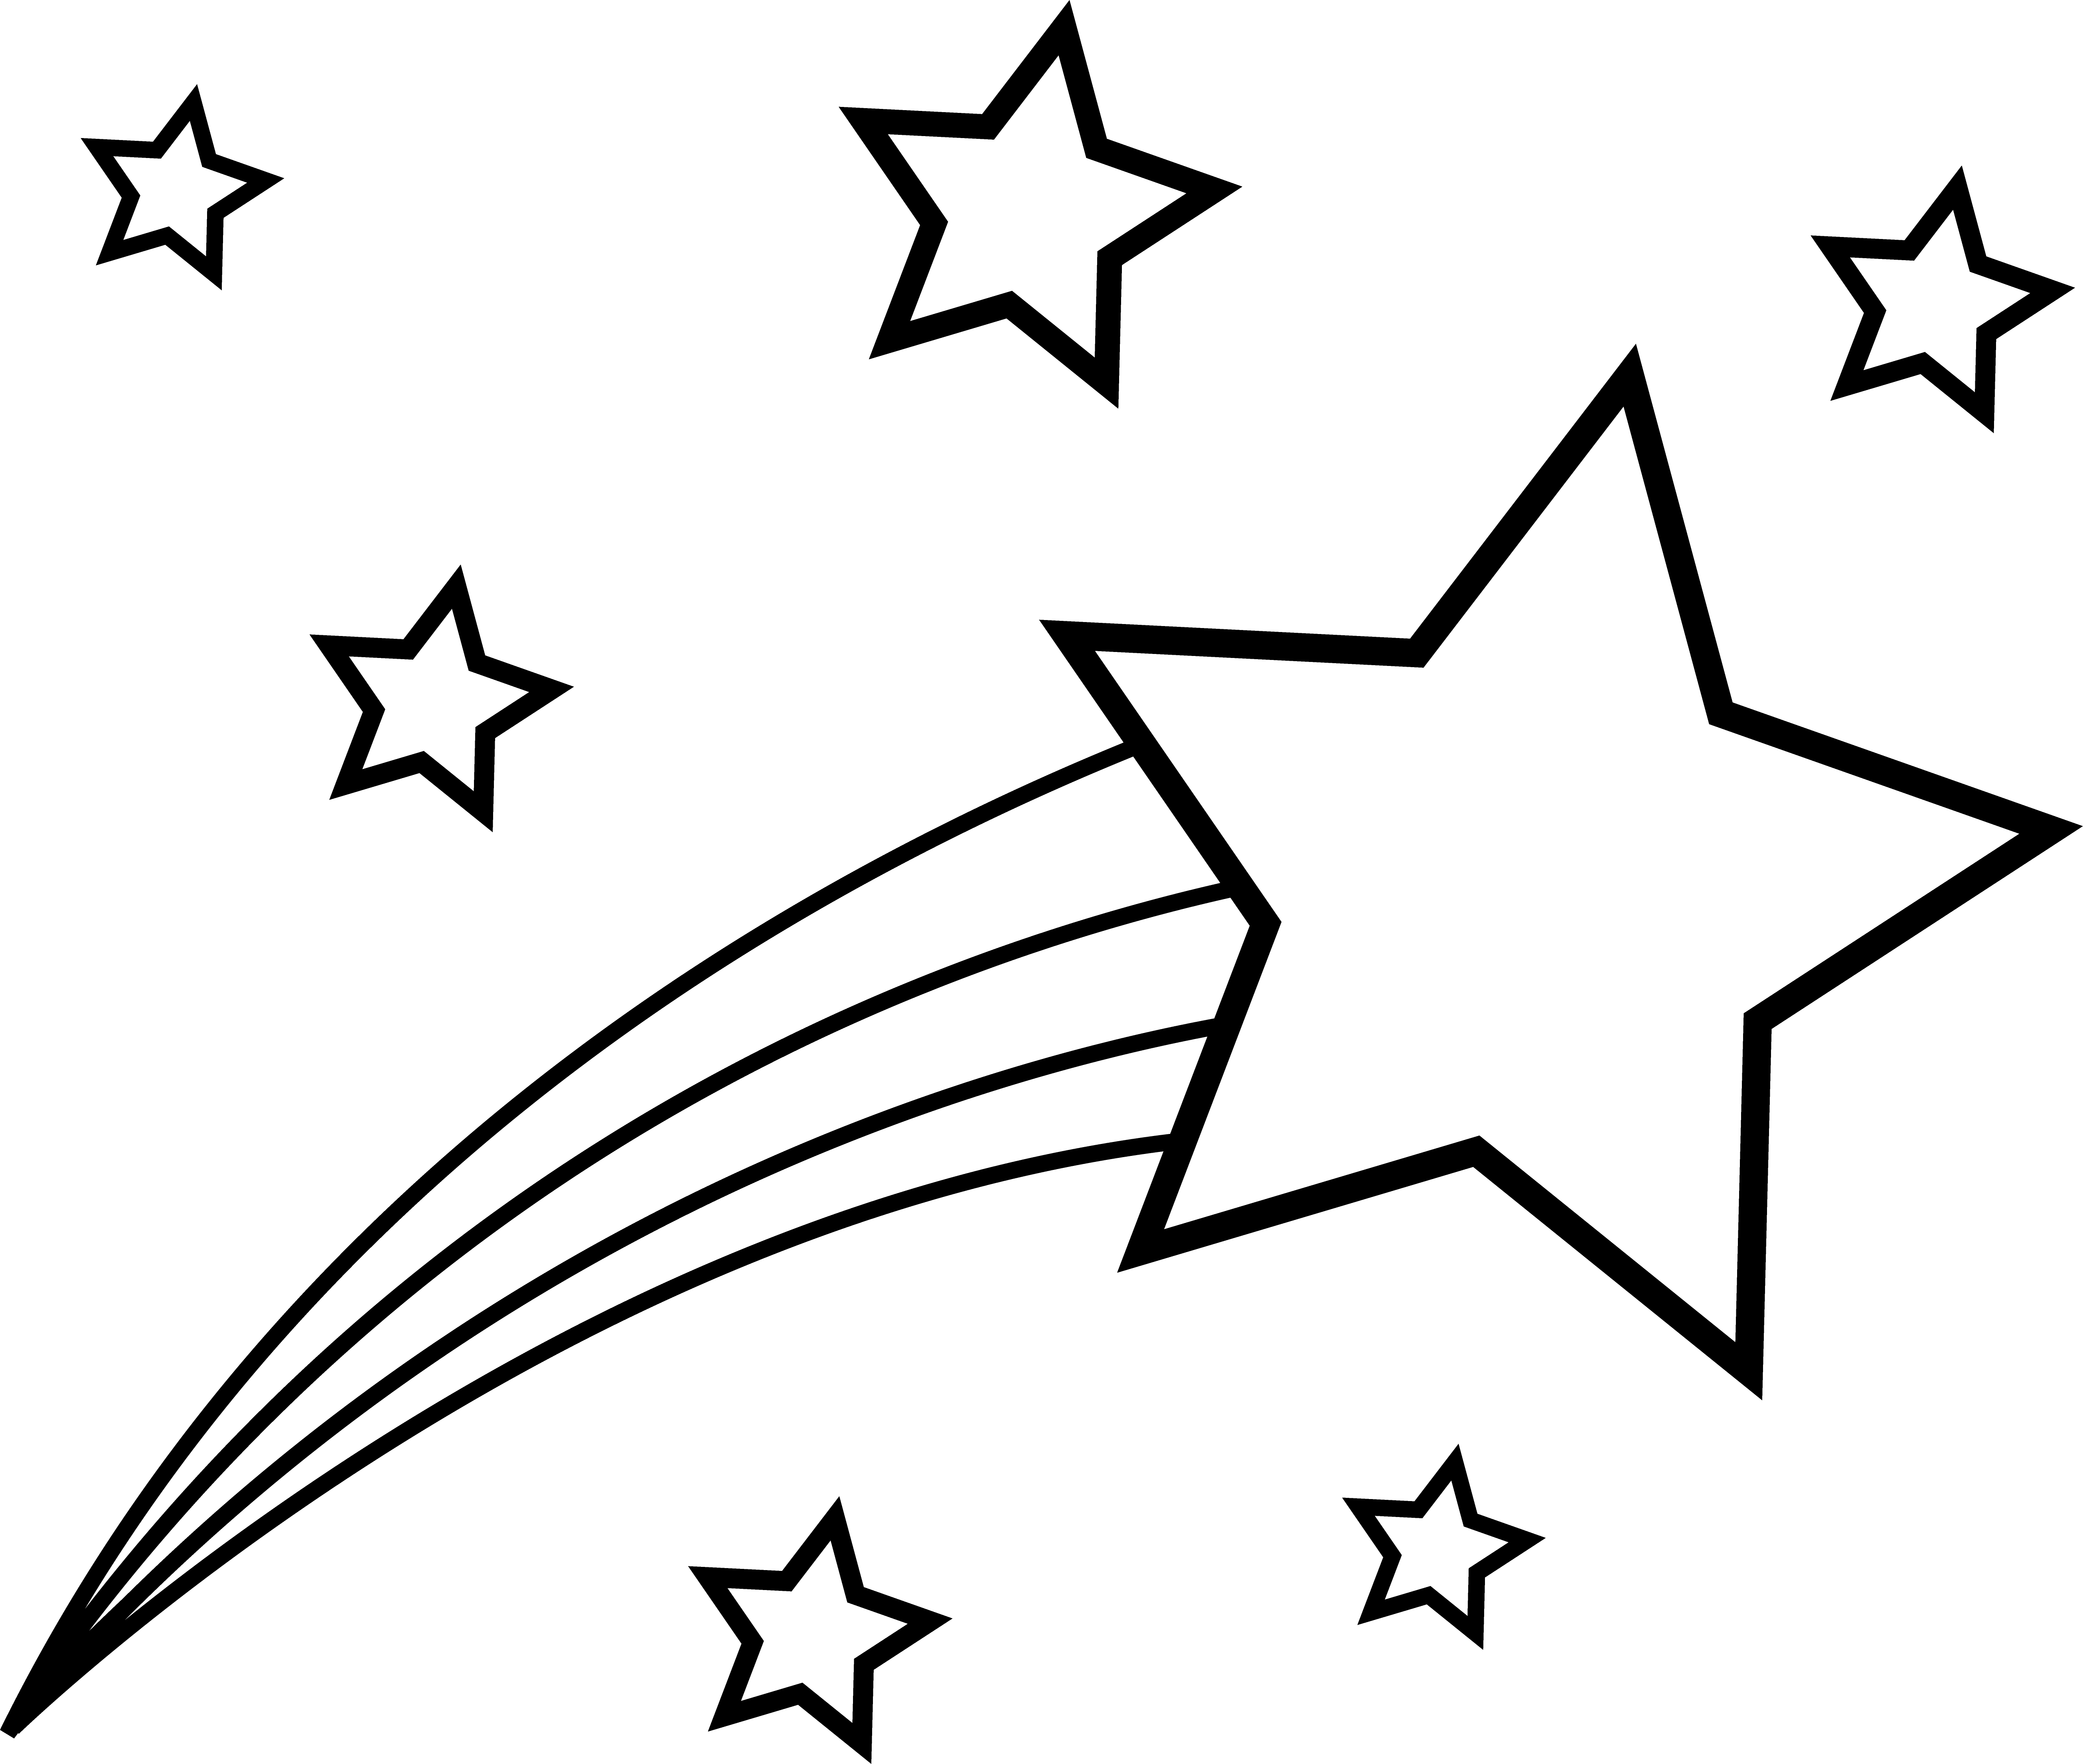 black star outline - Shooting Star Clip Art